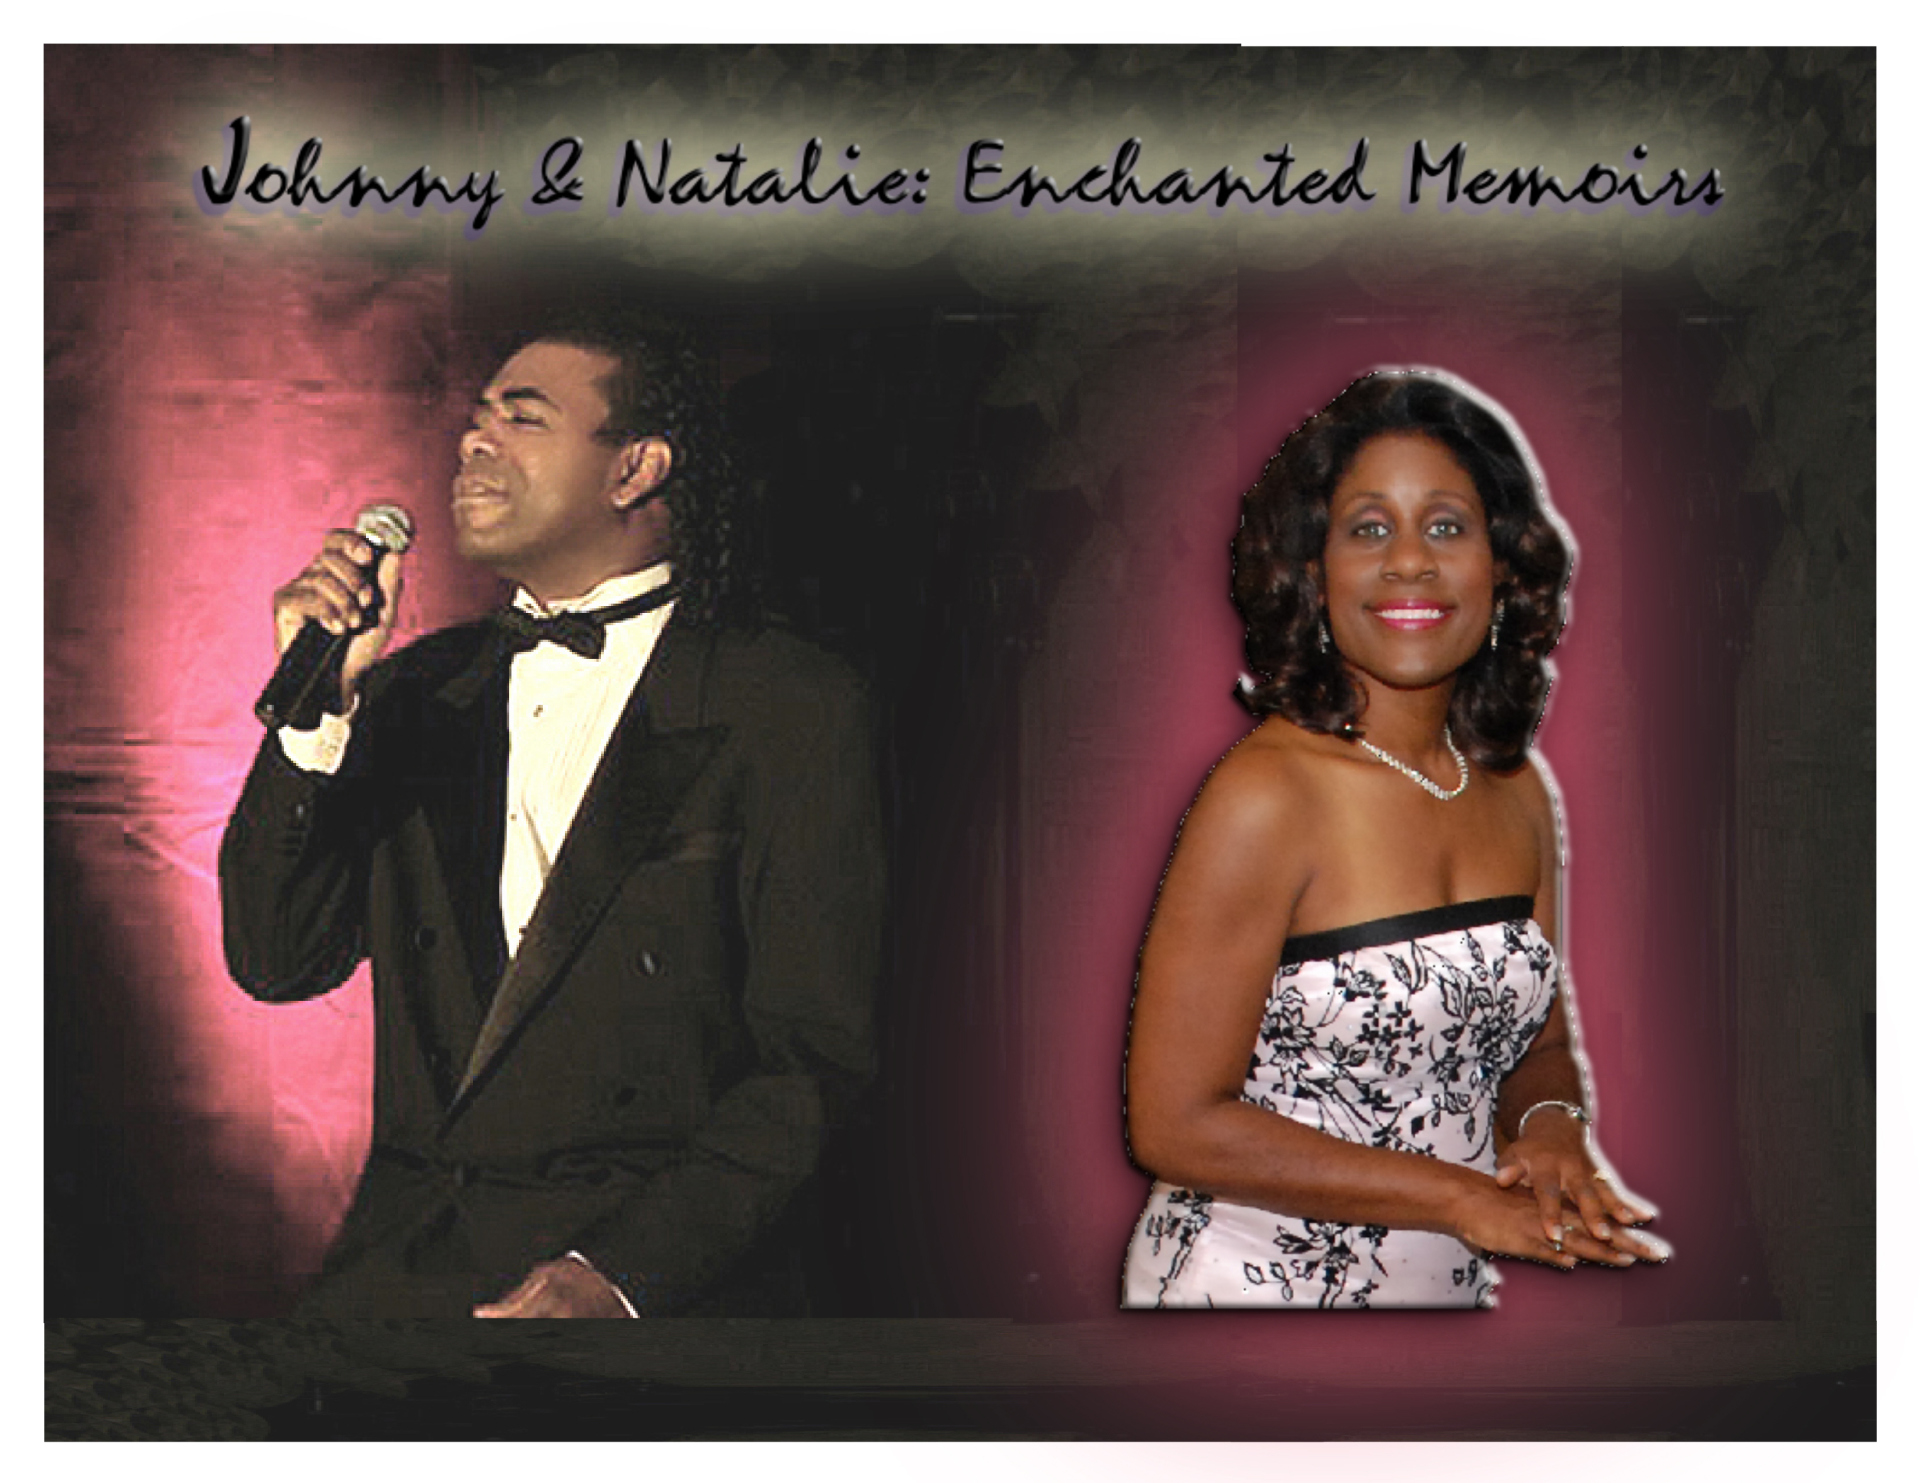 Johnny & Natalie Tribute